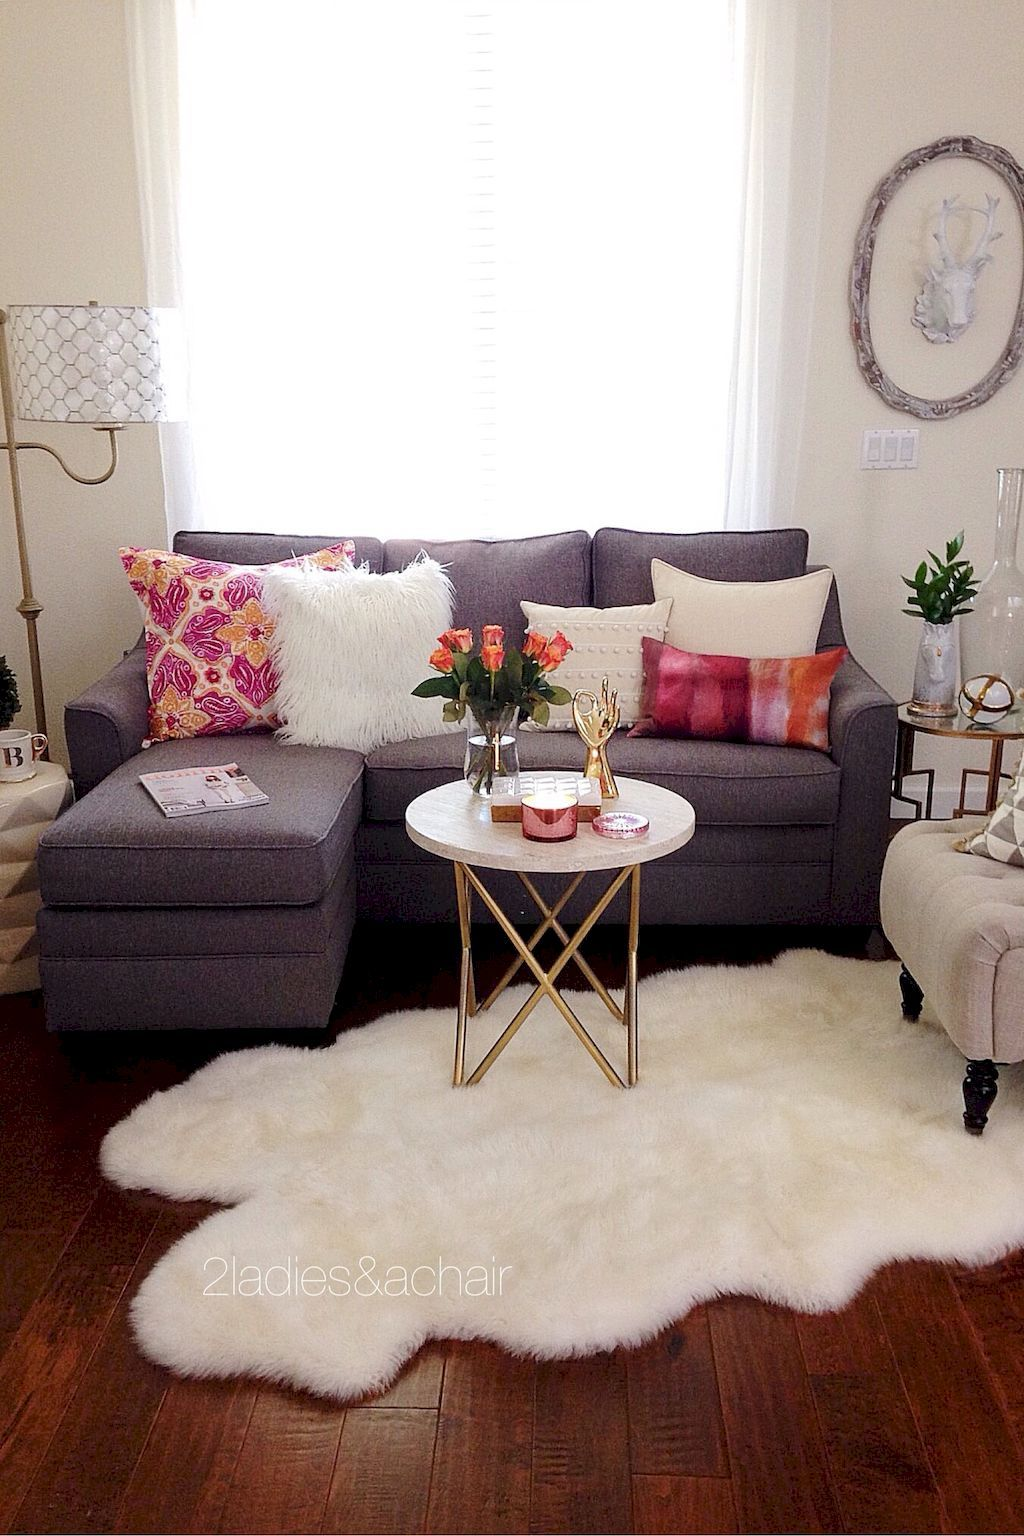 75 First Apartment Decorating Ideas on A Budget